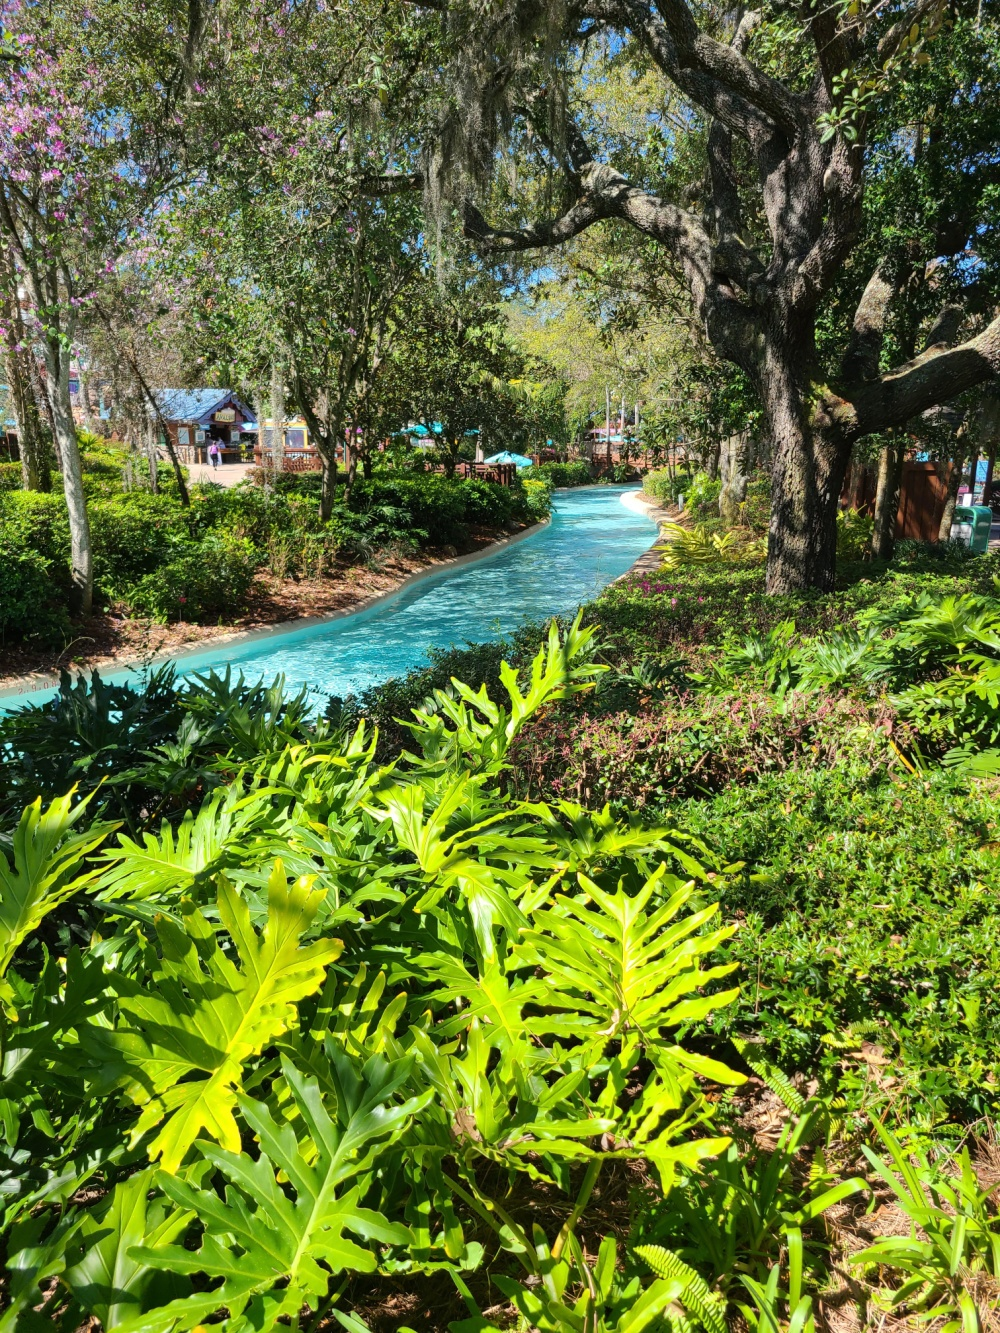 Best Things To Do At Disney's Blizzard Beach